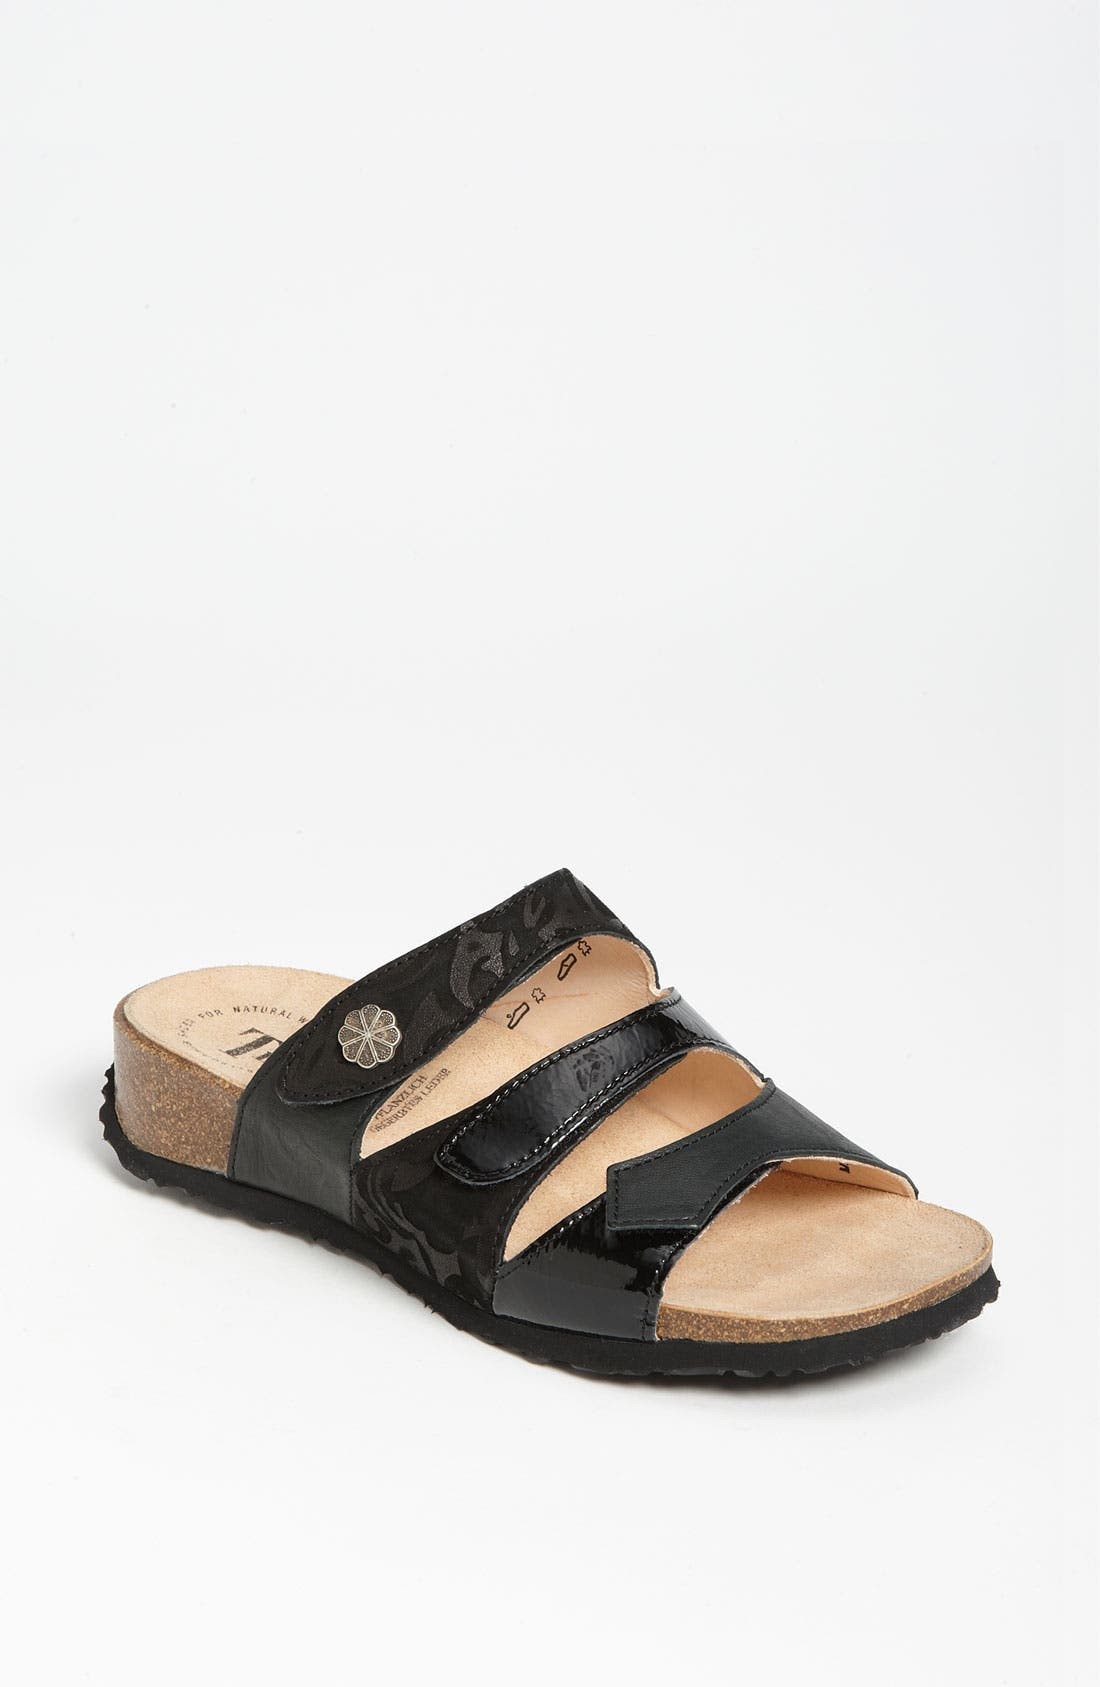 Alternate Image 1 Selected - Think! 'Mizzi' Sandal